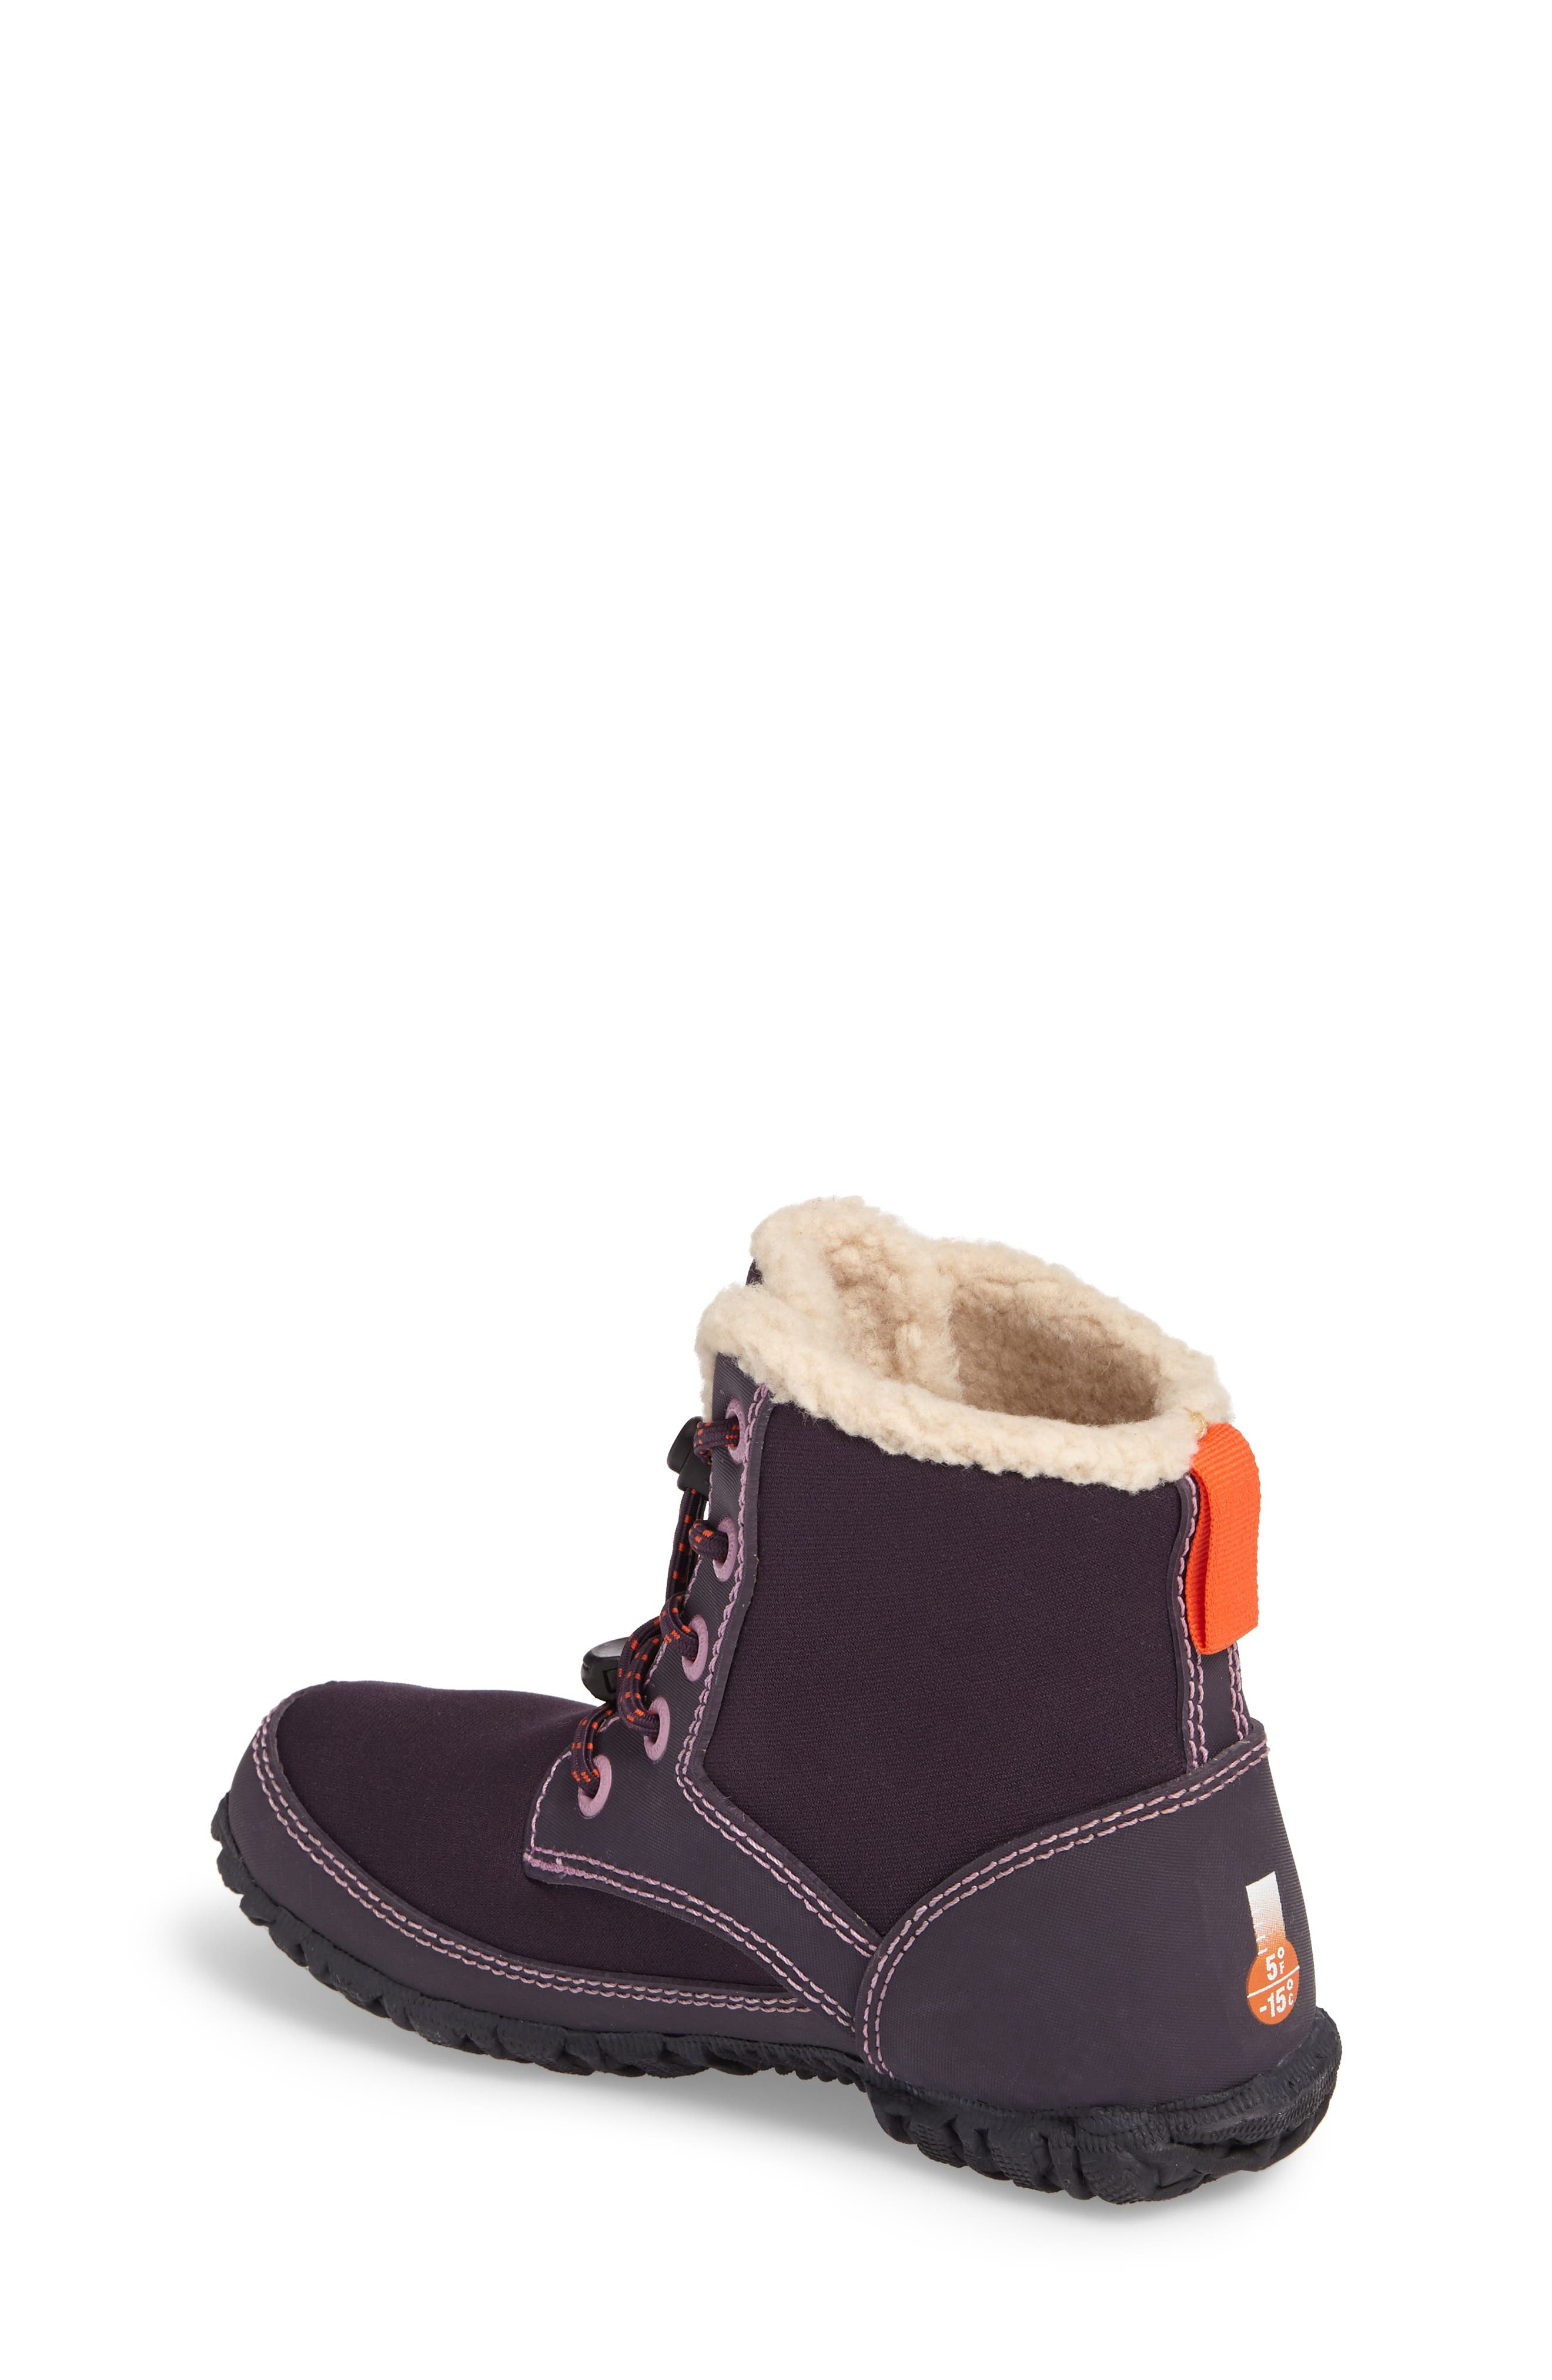 Skyler Faux Fur Insulated Waterproof Boot,                             Alternate thumbnail 2, color,                             EGGPLANT MULTI